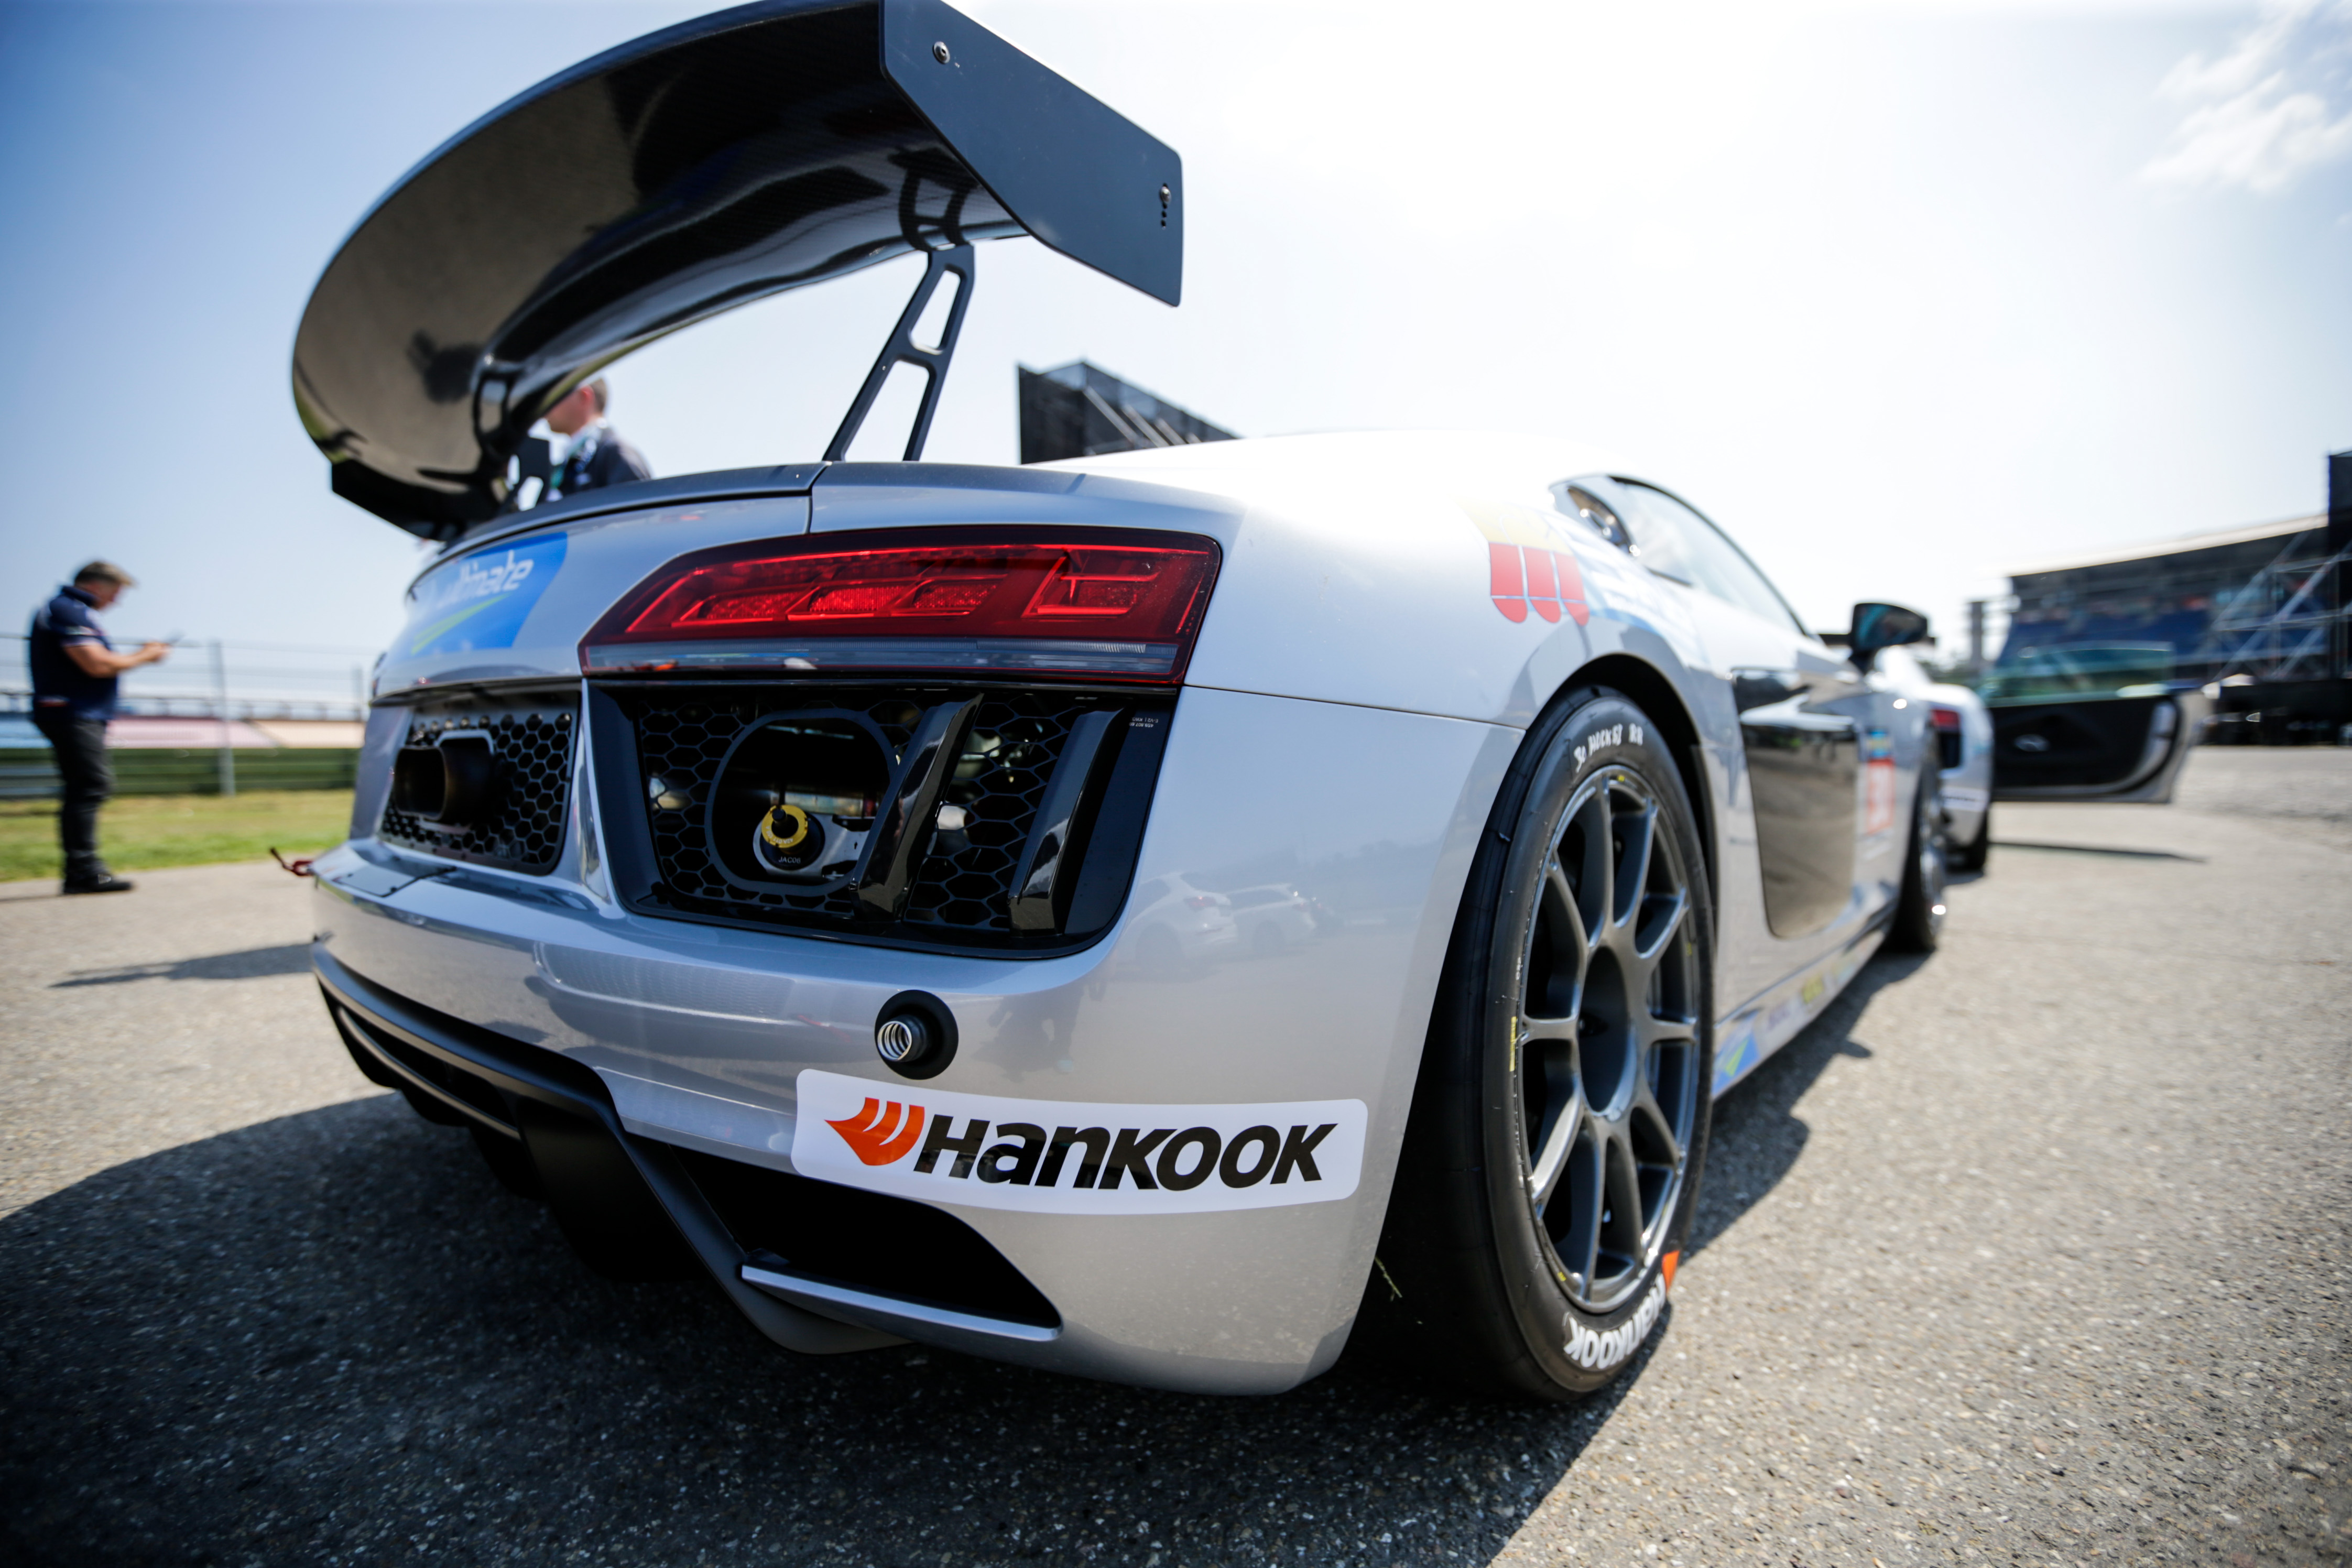 Hankook Tire Media Center Press Room Europe Cis Hankook And